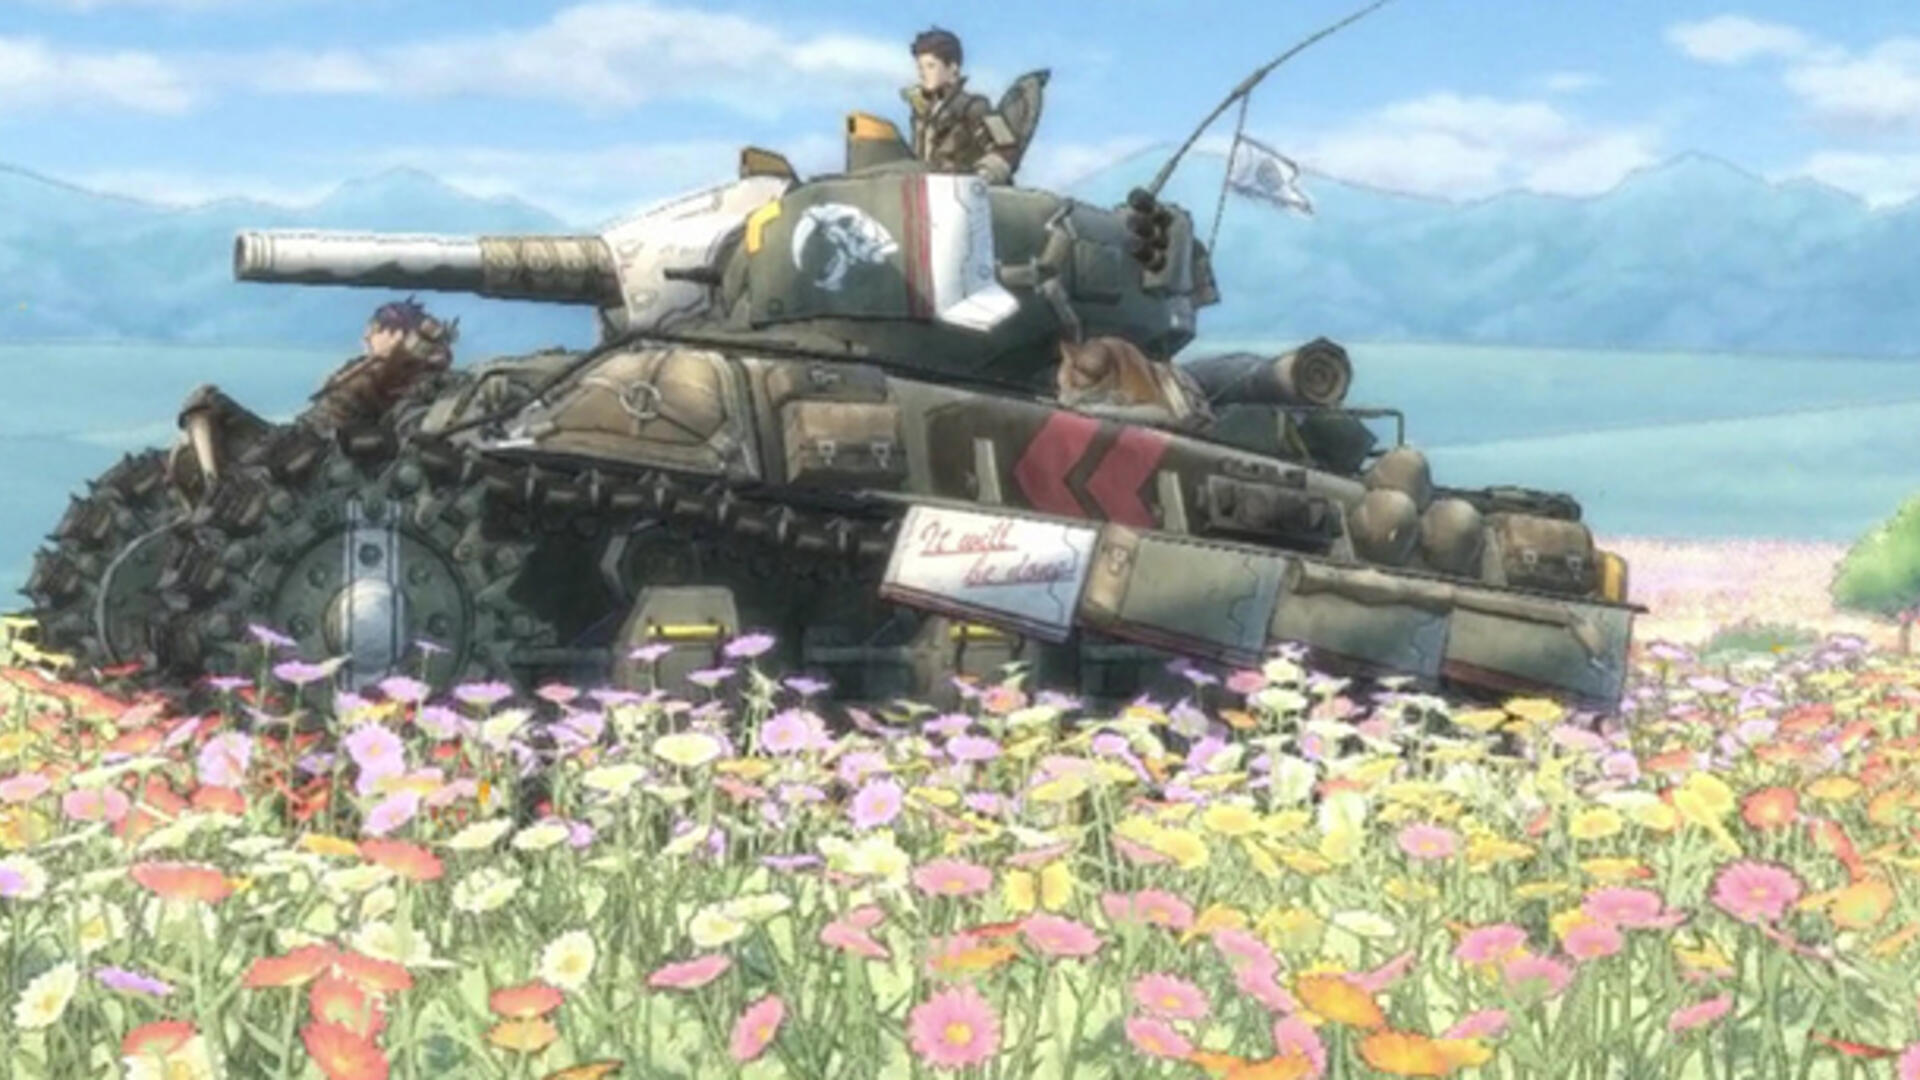 Initial Thoughts on Valkyria Chronicles 4 Ahead of the Review